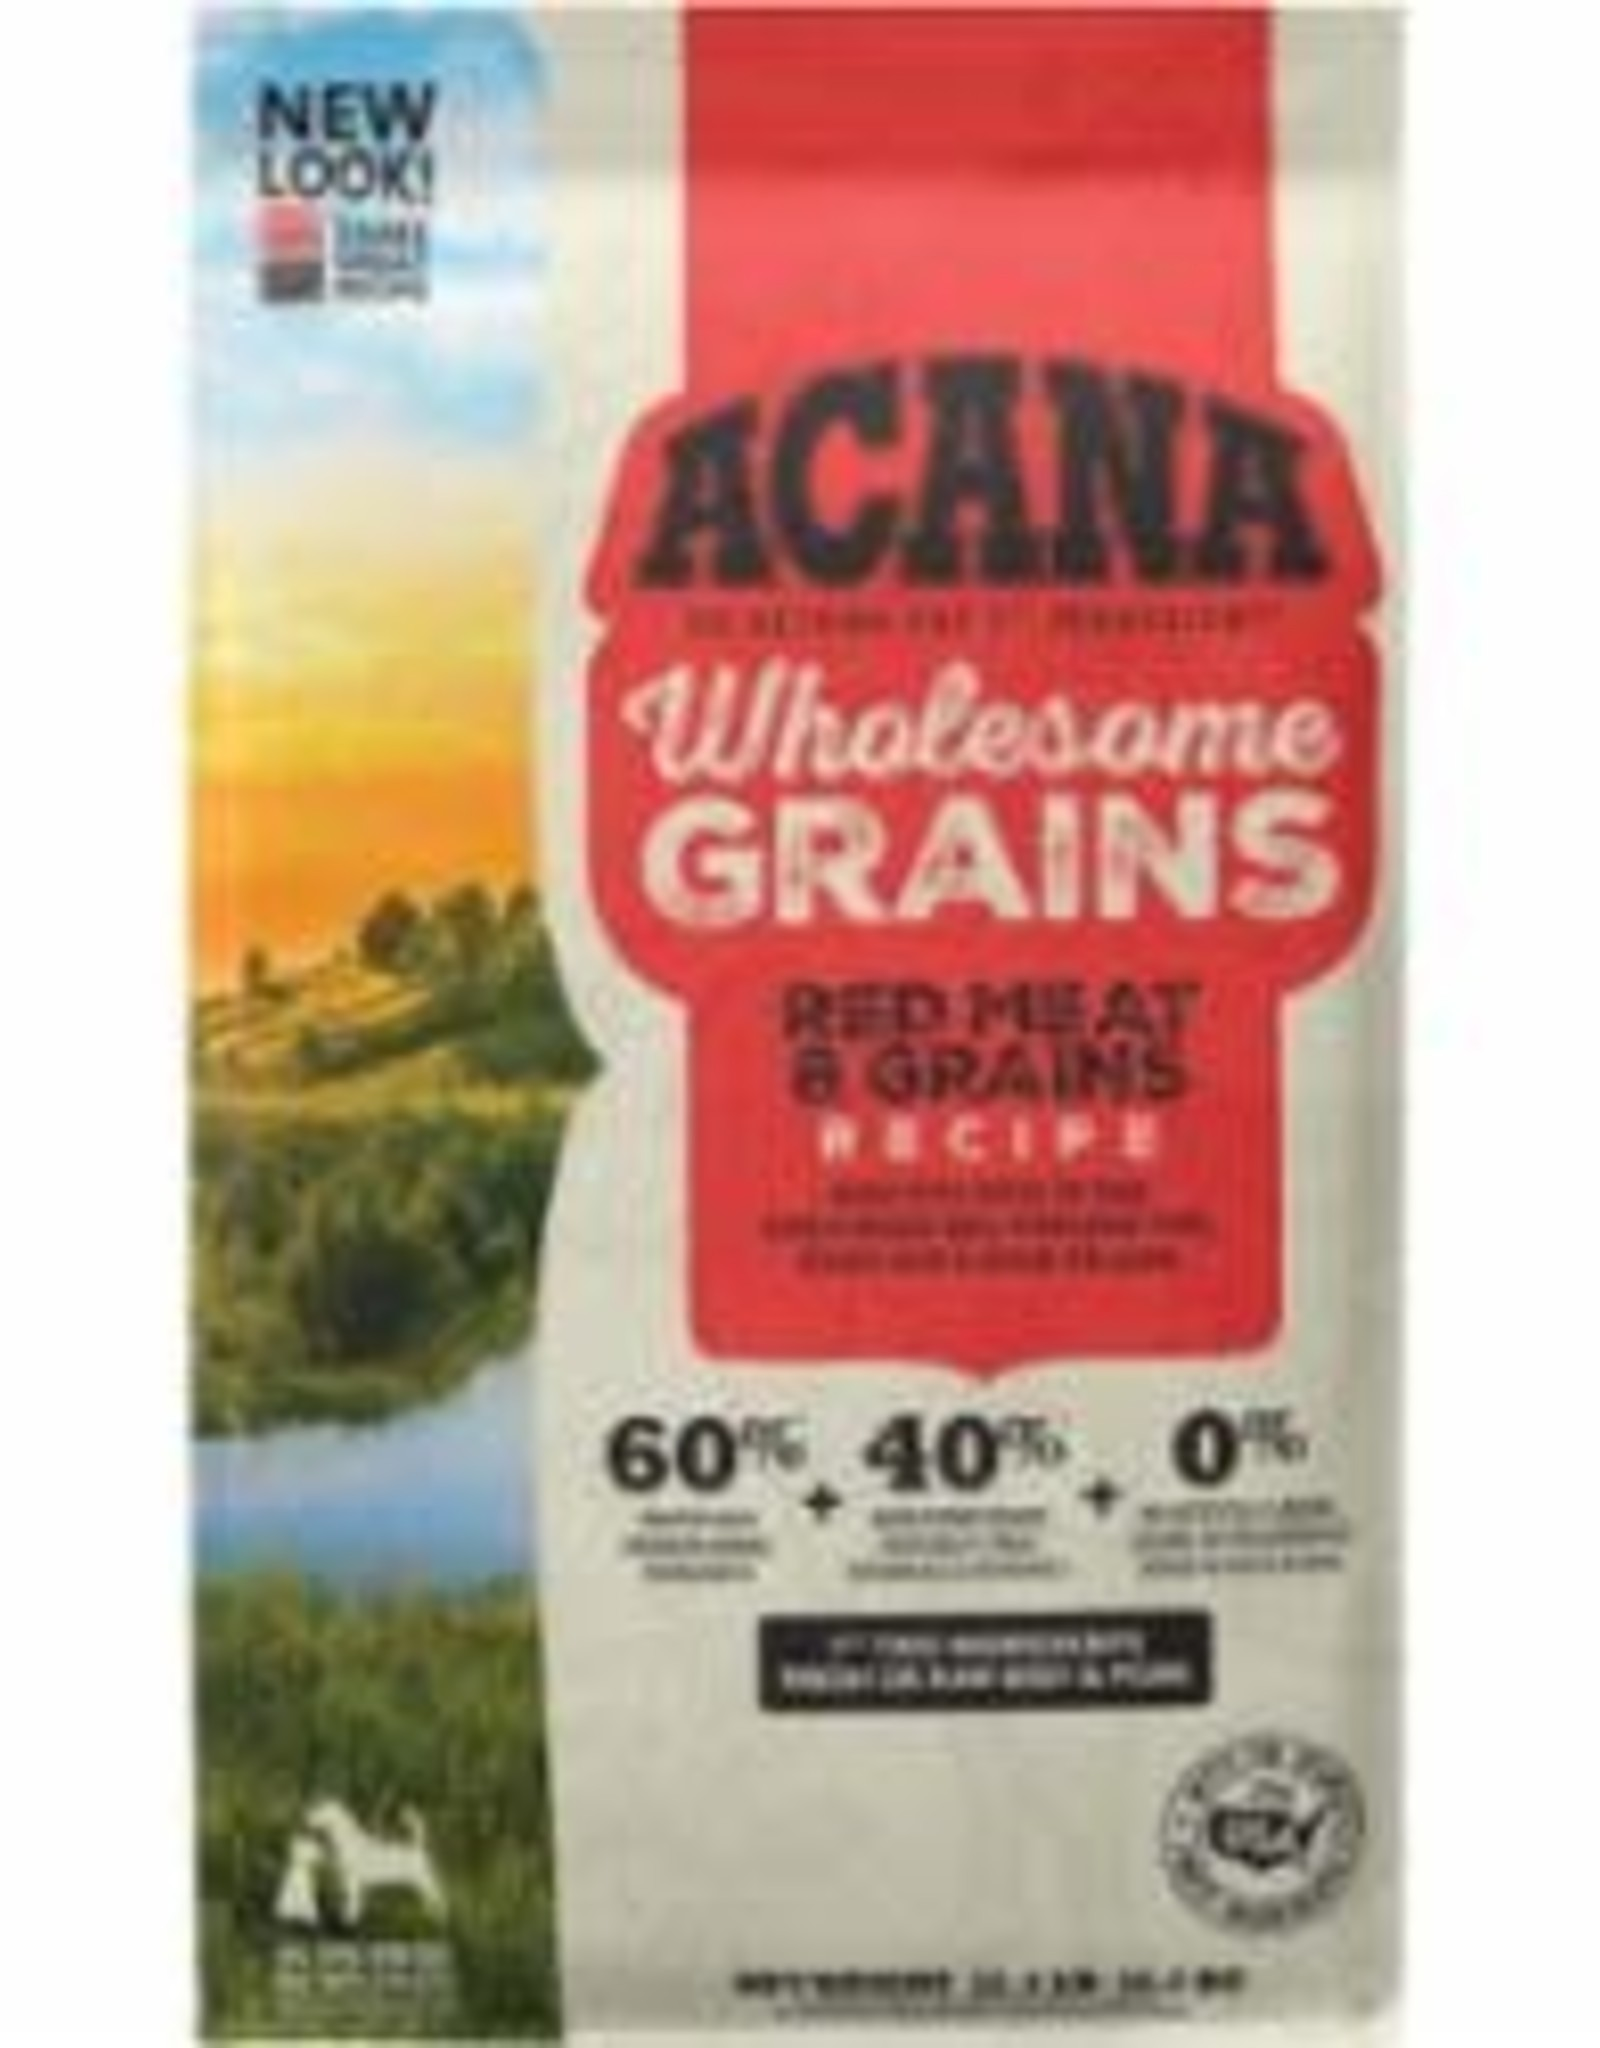 Acana ACANA DOG WHOLESOME GRAINS RED MEAT 22.5LB